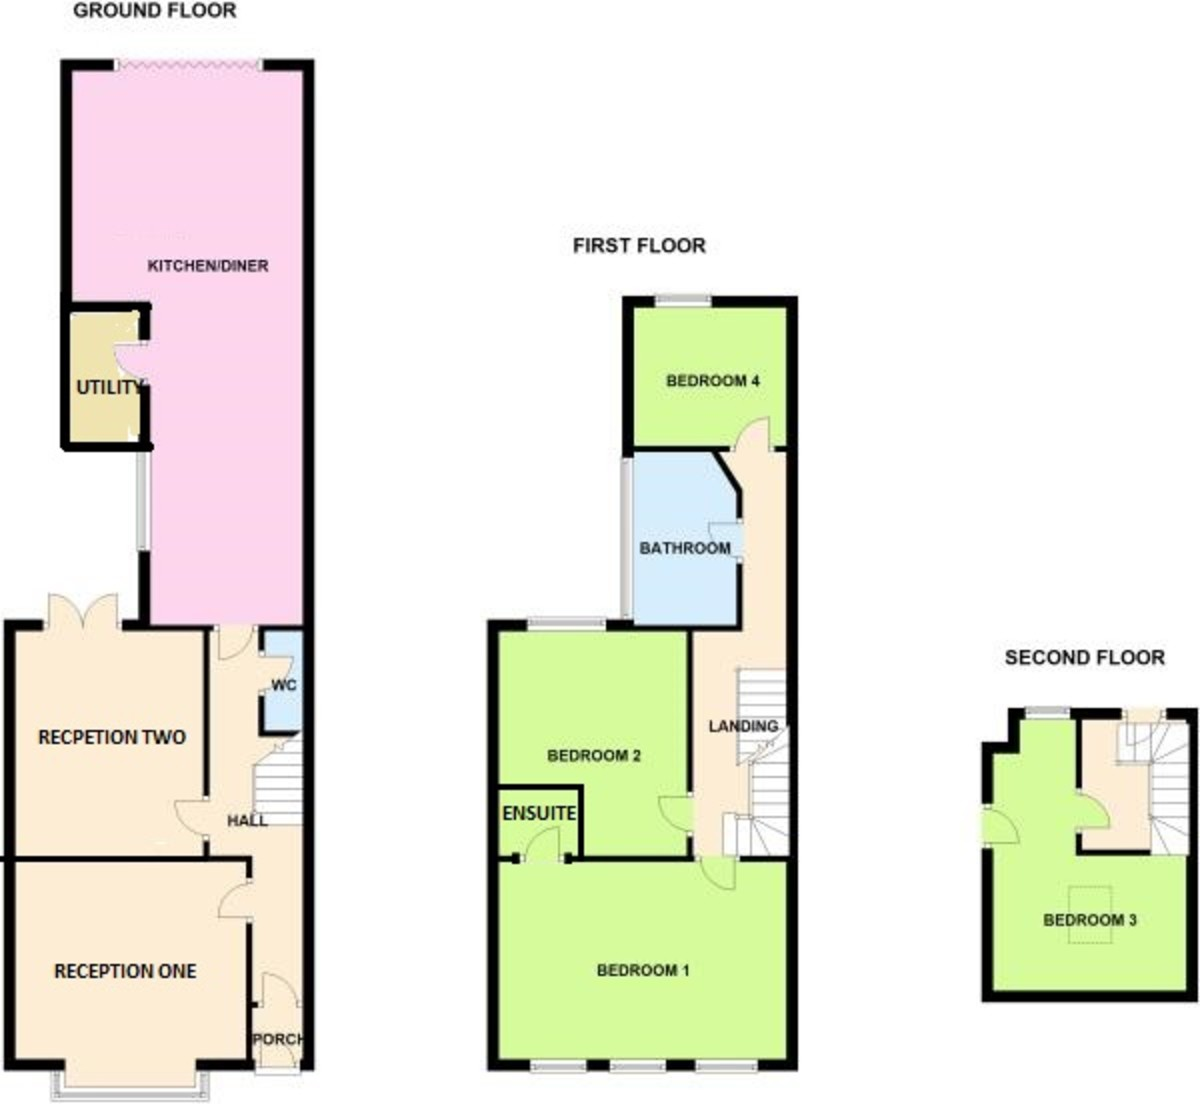 Western Road, Sutton Coldfield, B73  Floorplan